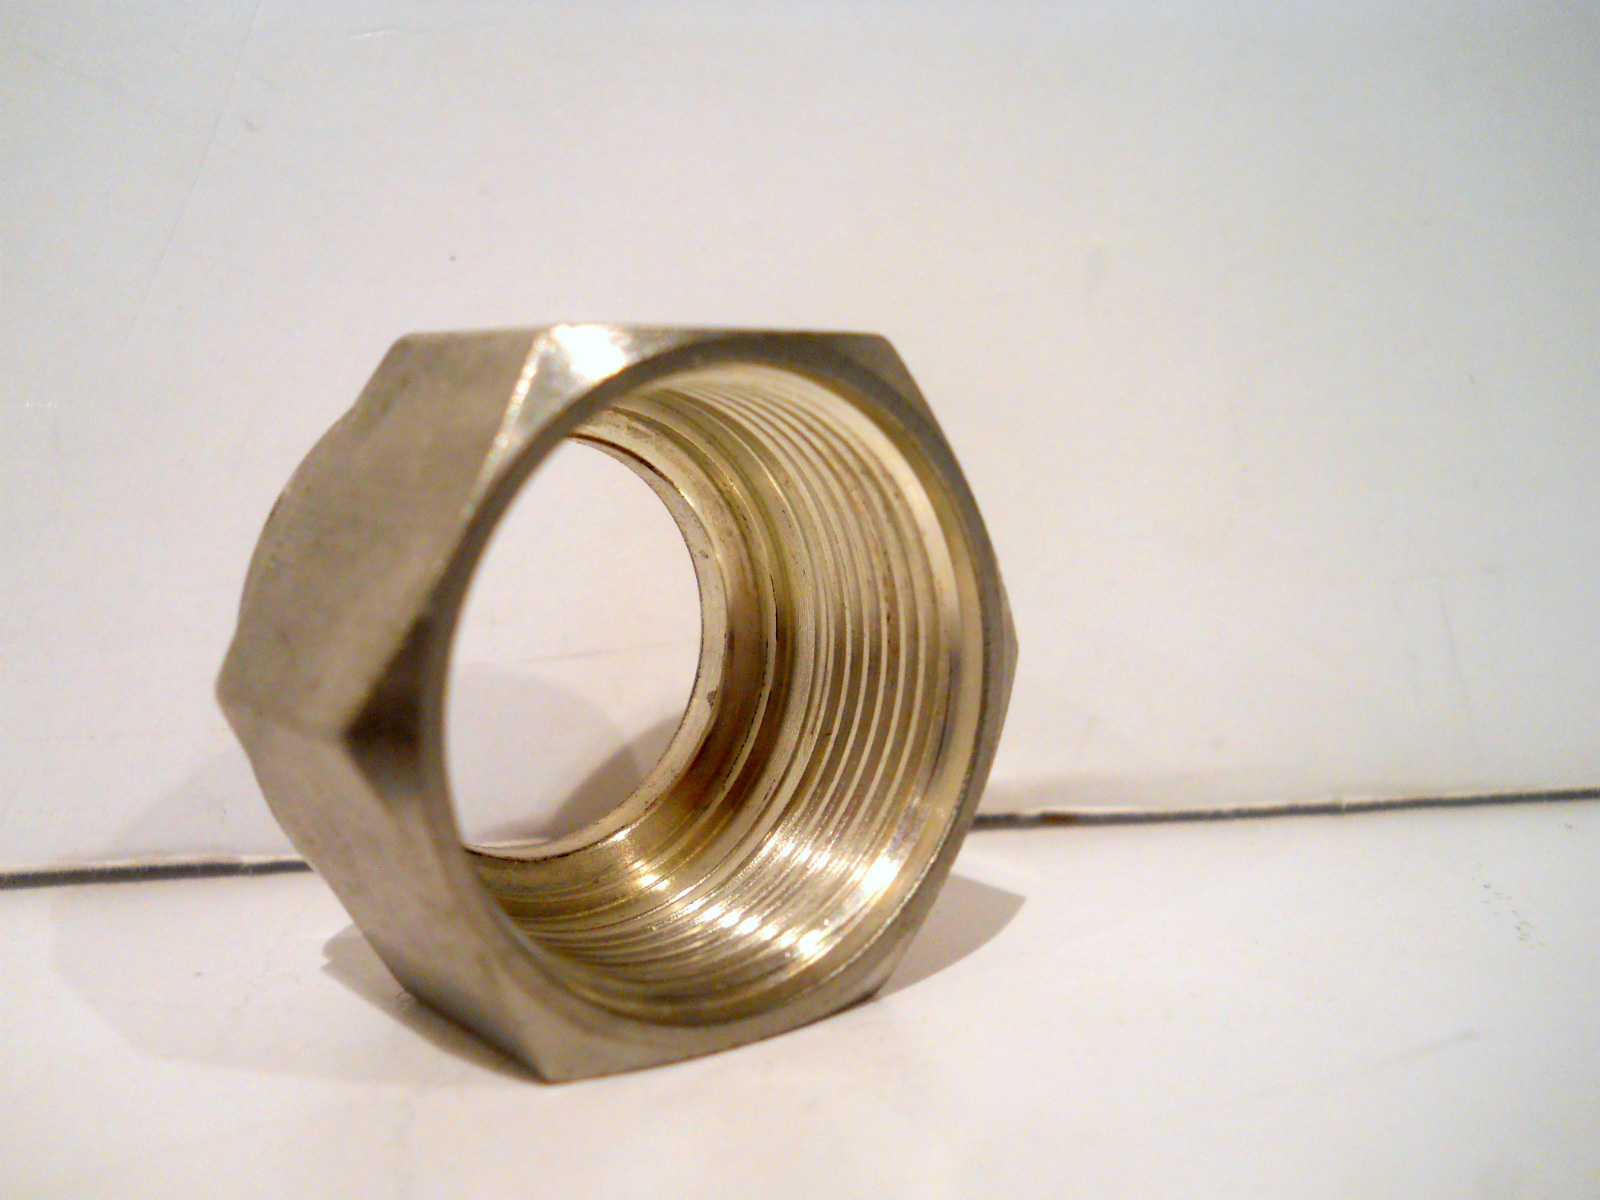 New swagelok stainless steel quot tube o d union